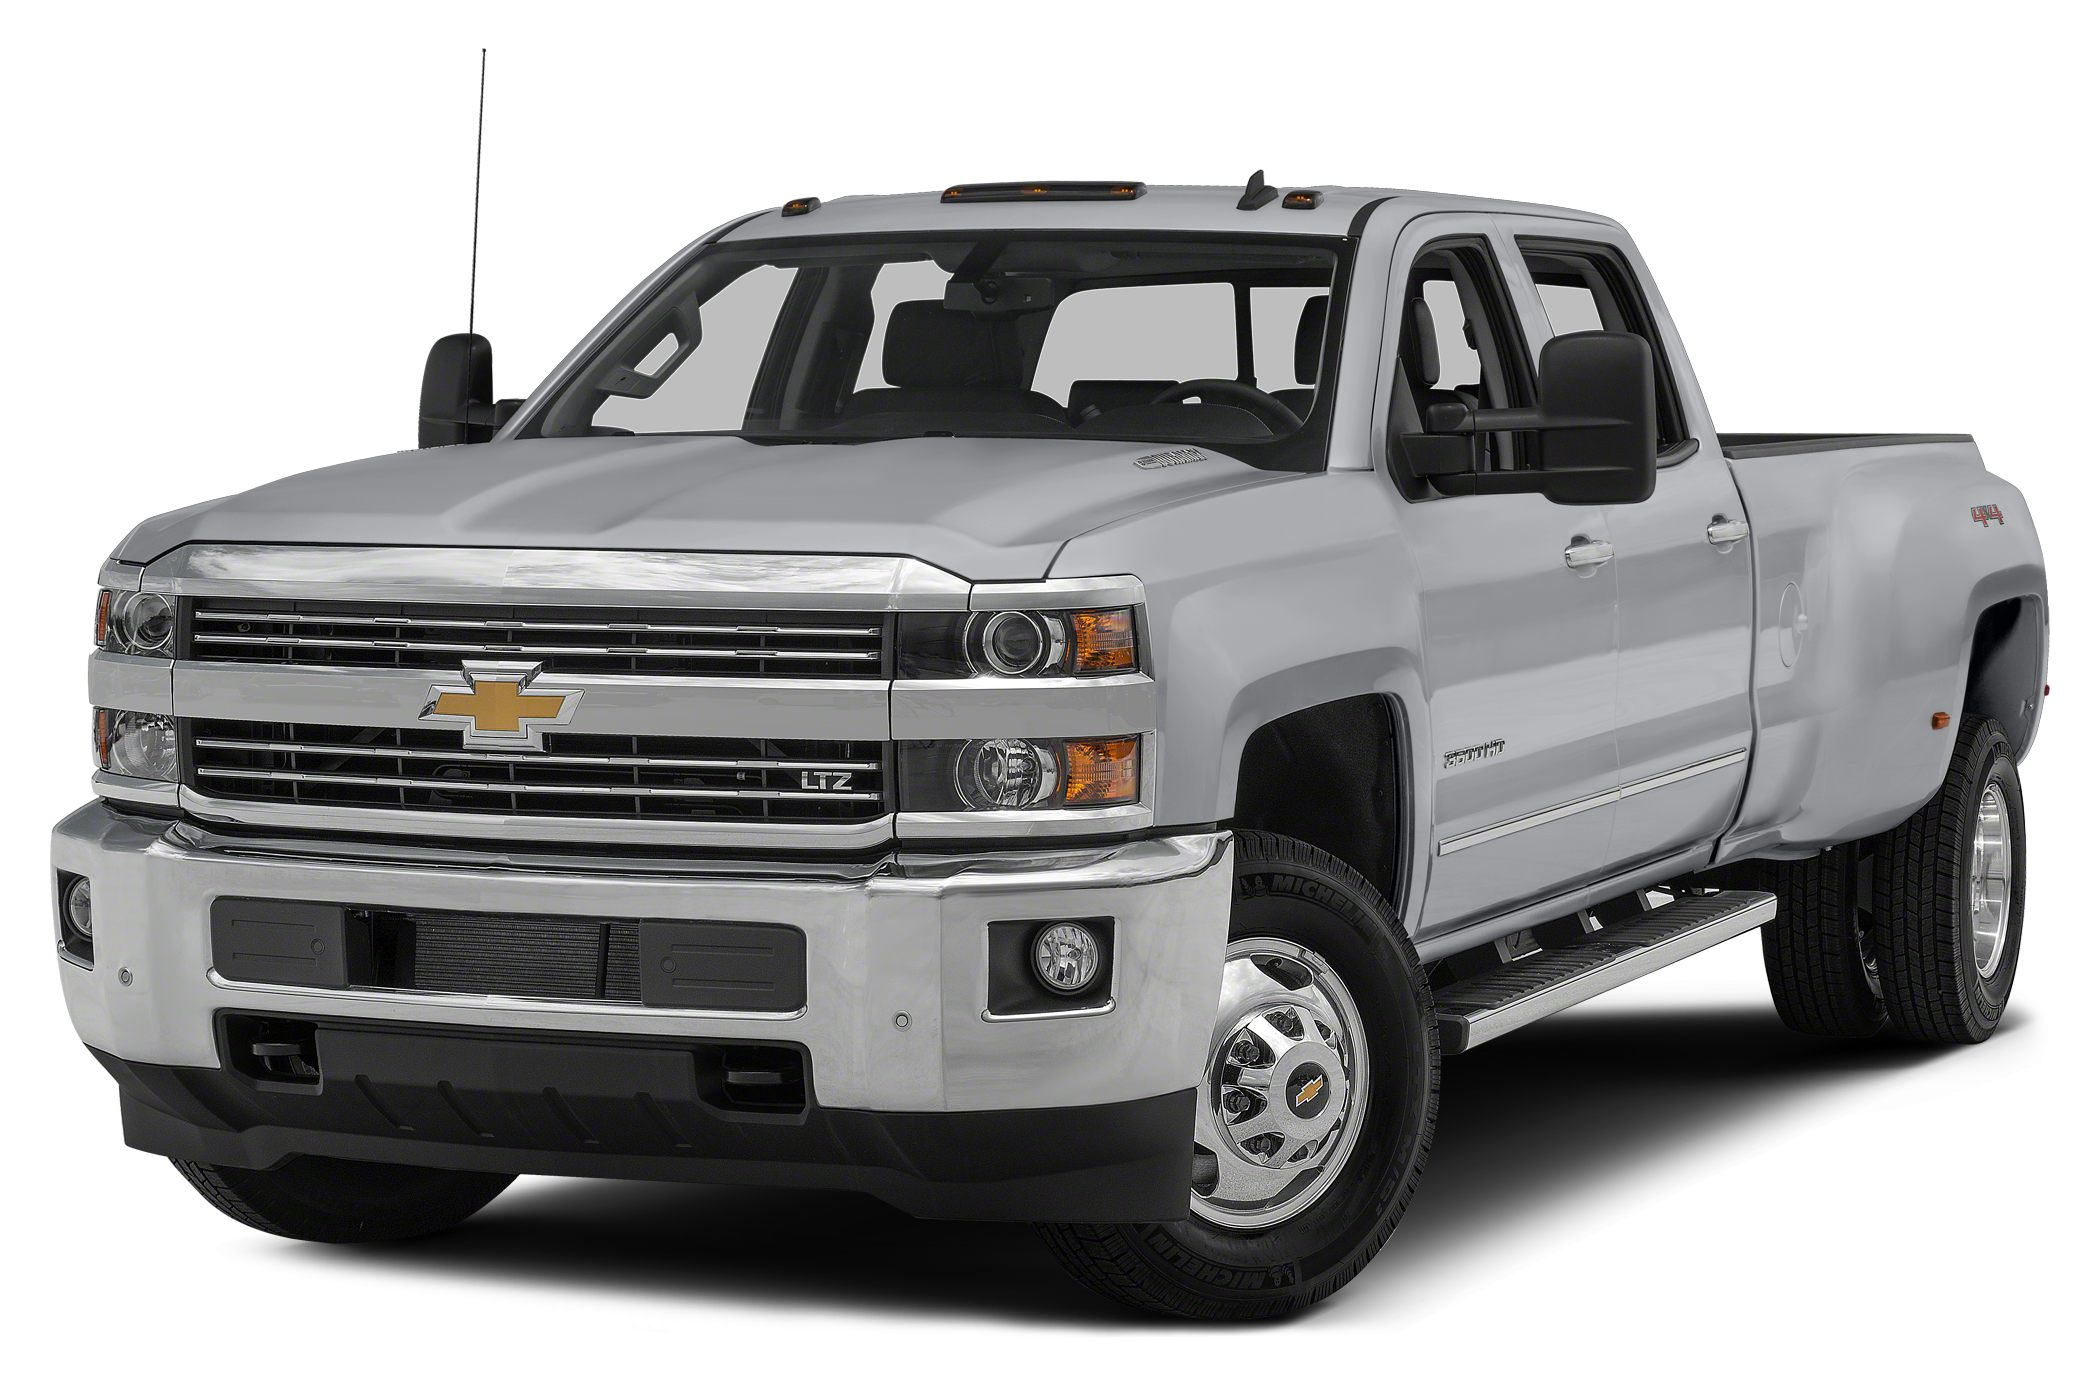 2015 Chevrolet Silverado 3500 High Country Crew Cab Pickup for sale in Westminster for $65,170 with 2 miles